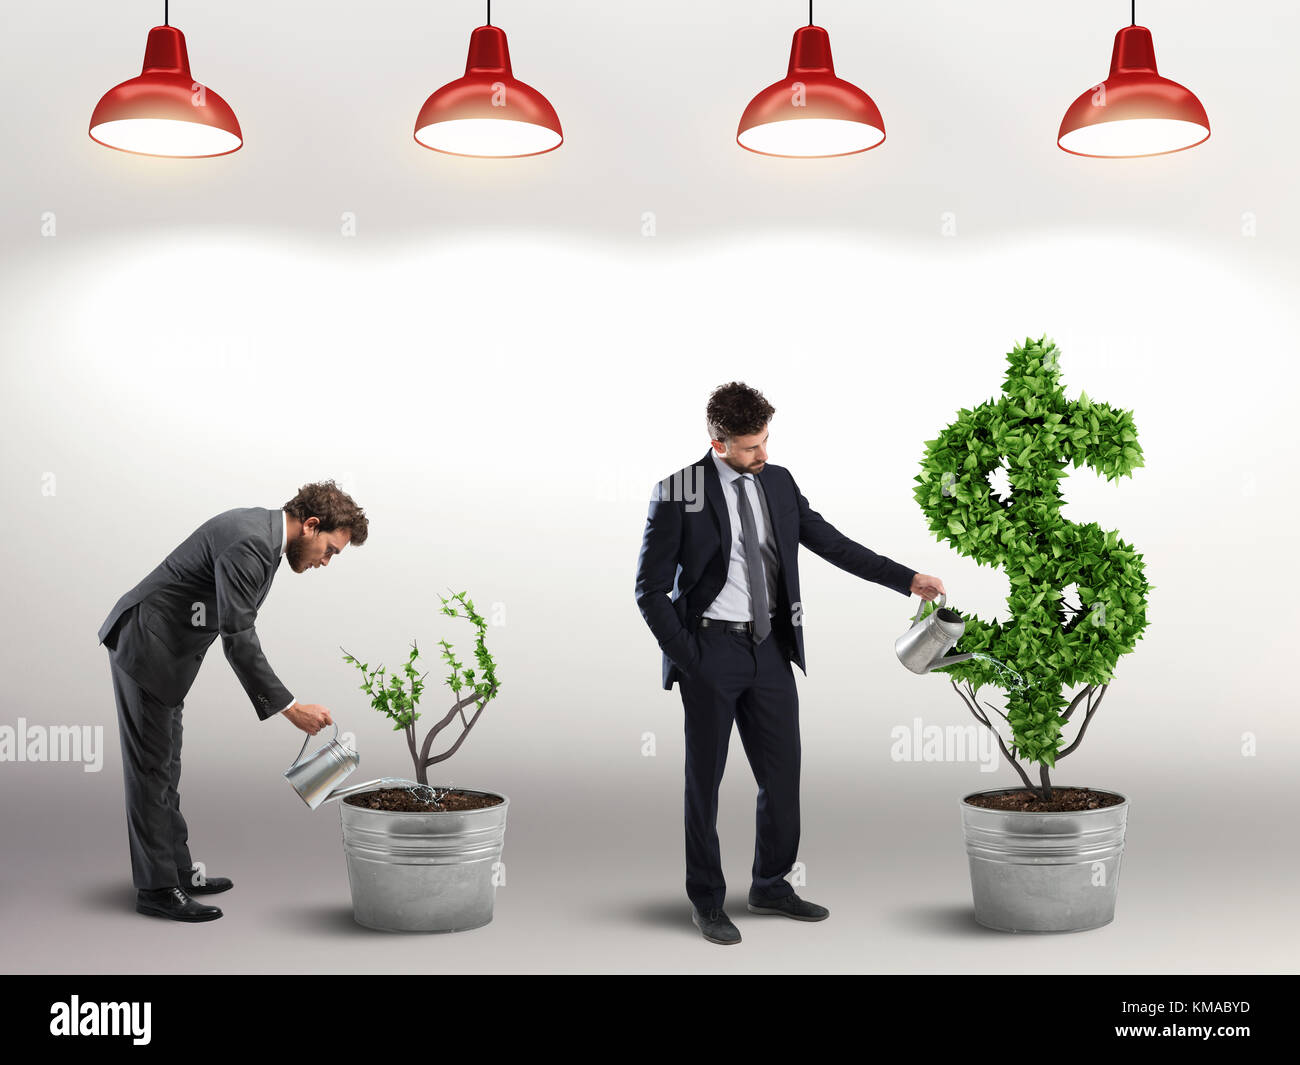 Ambition and skill of a businessman. 3D Rendering - Stock Image